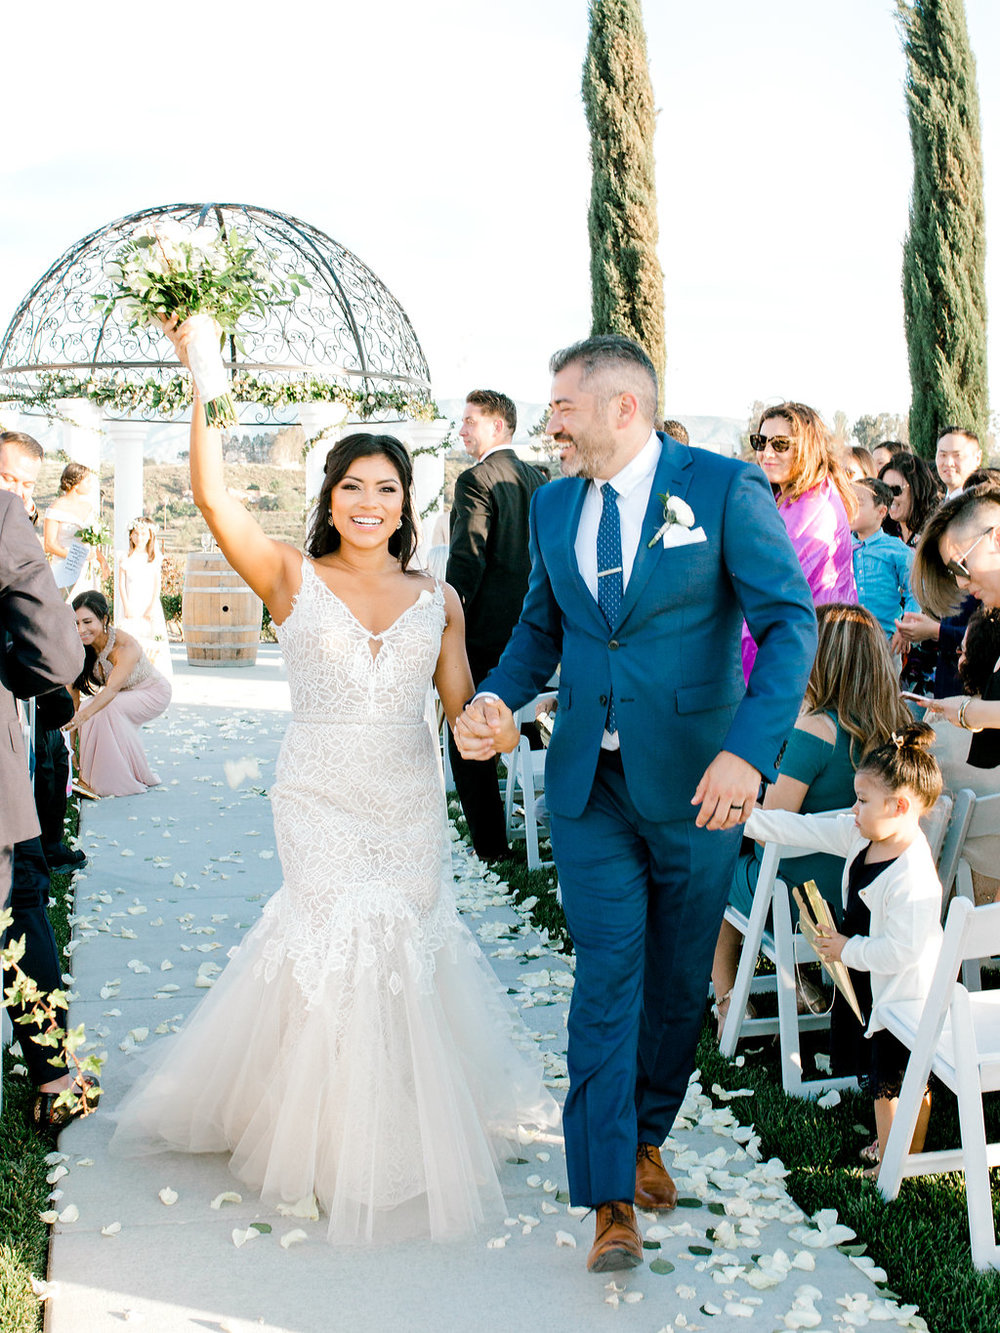 M+D_Wedding_201856557.jpg Wedding Photography by Heather Anderson Photography